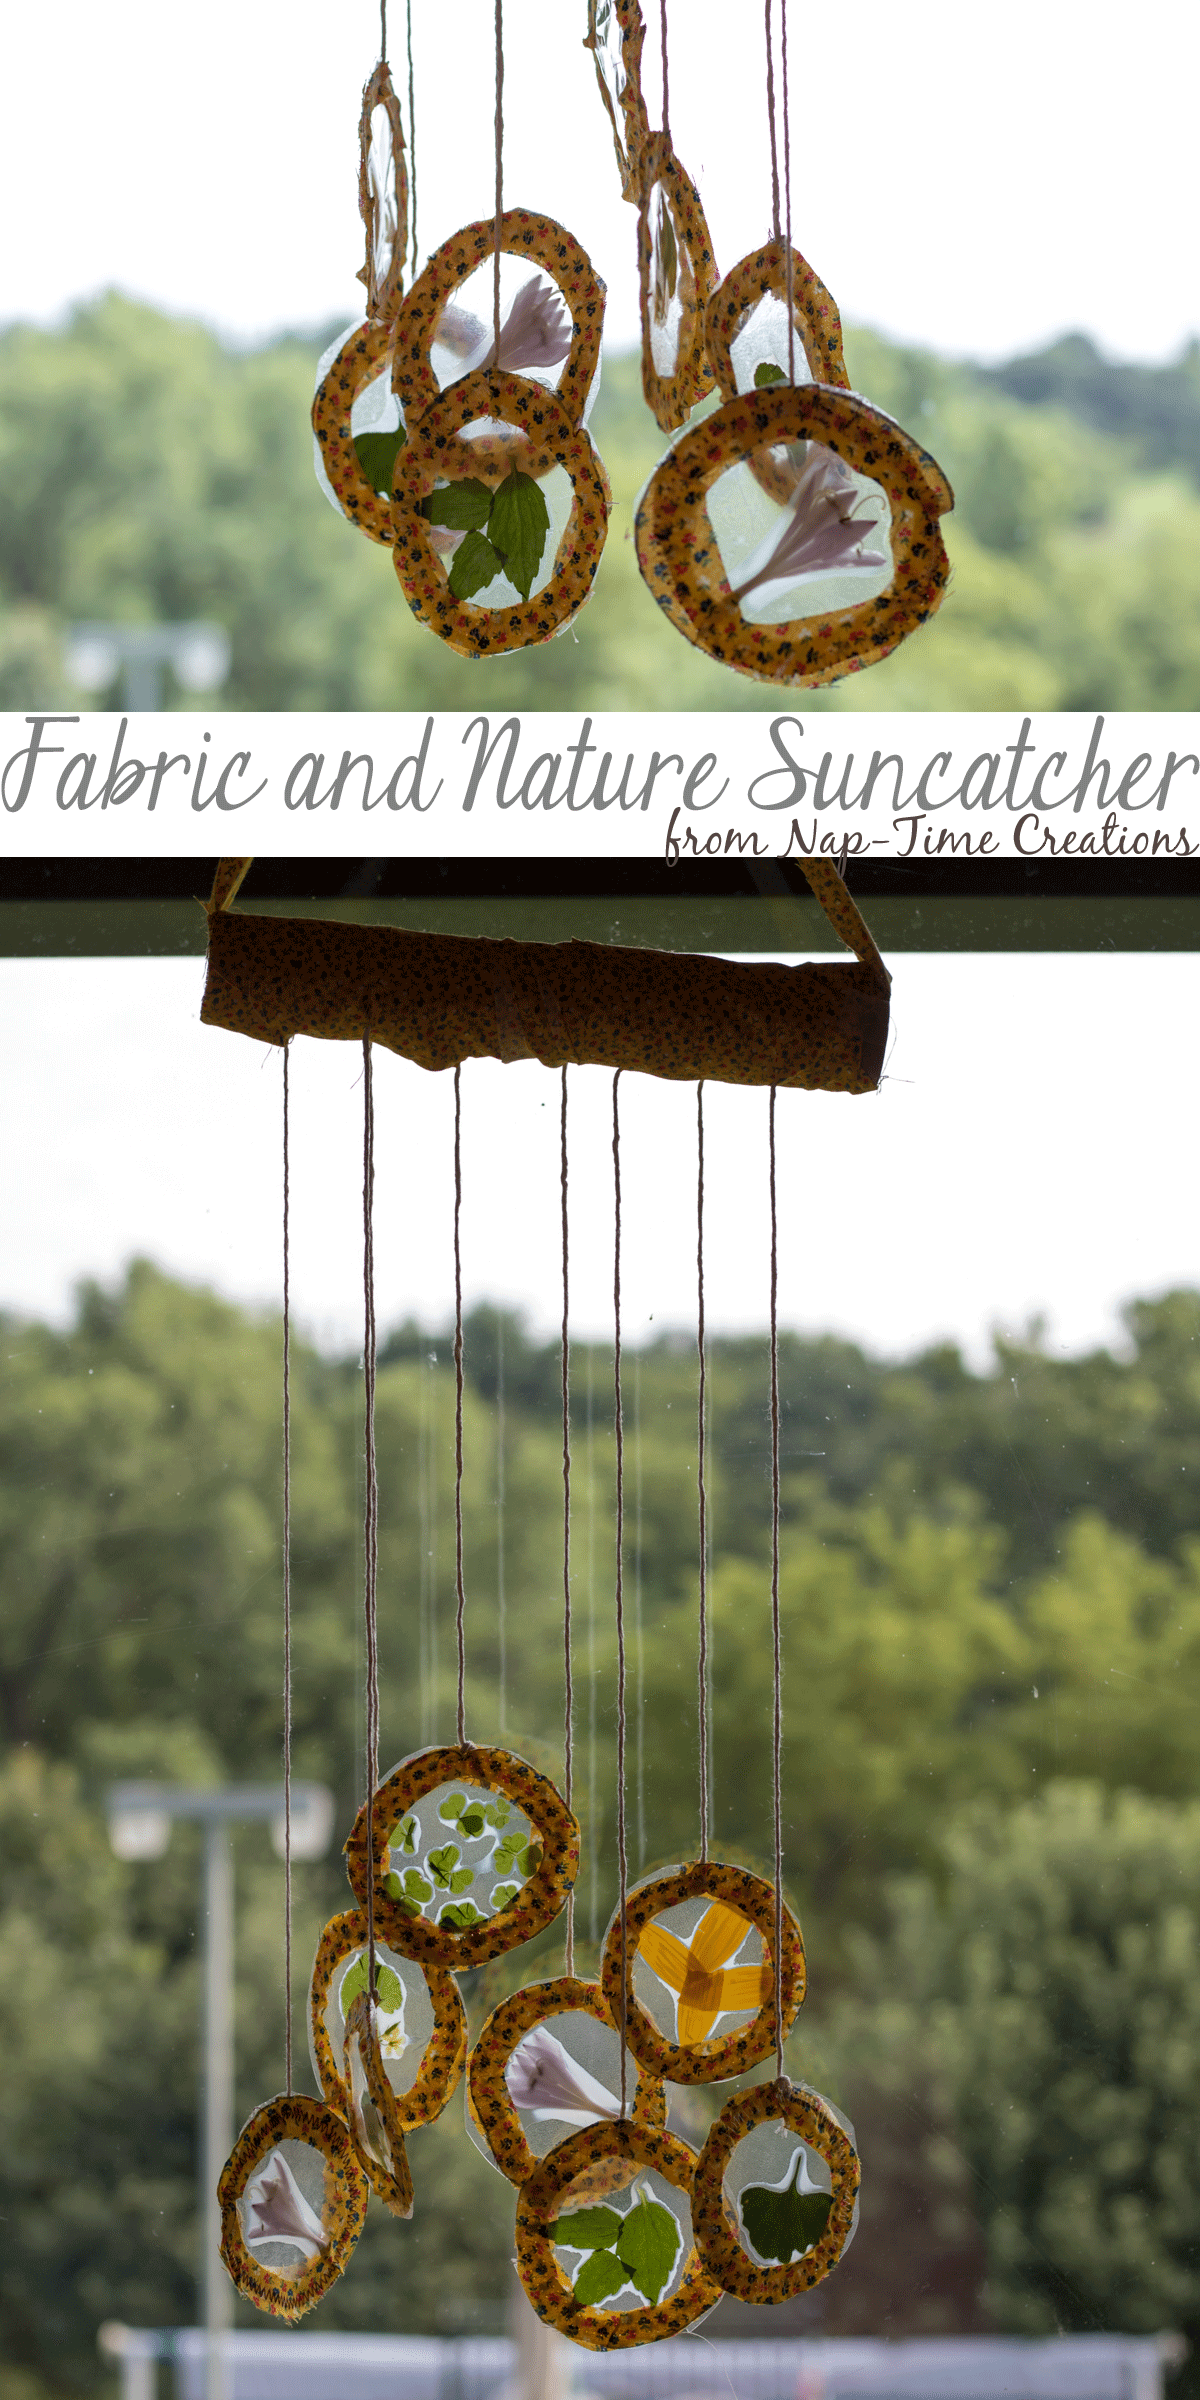 fabric and nature suncatcher -from-Nap-Time-Creations